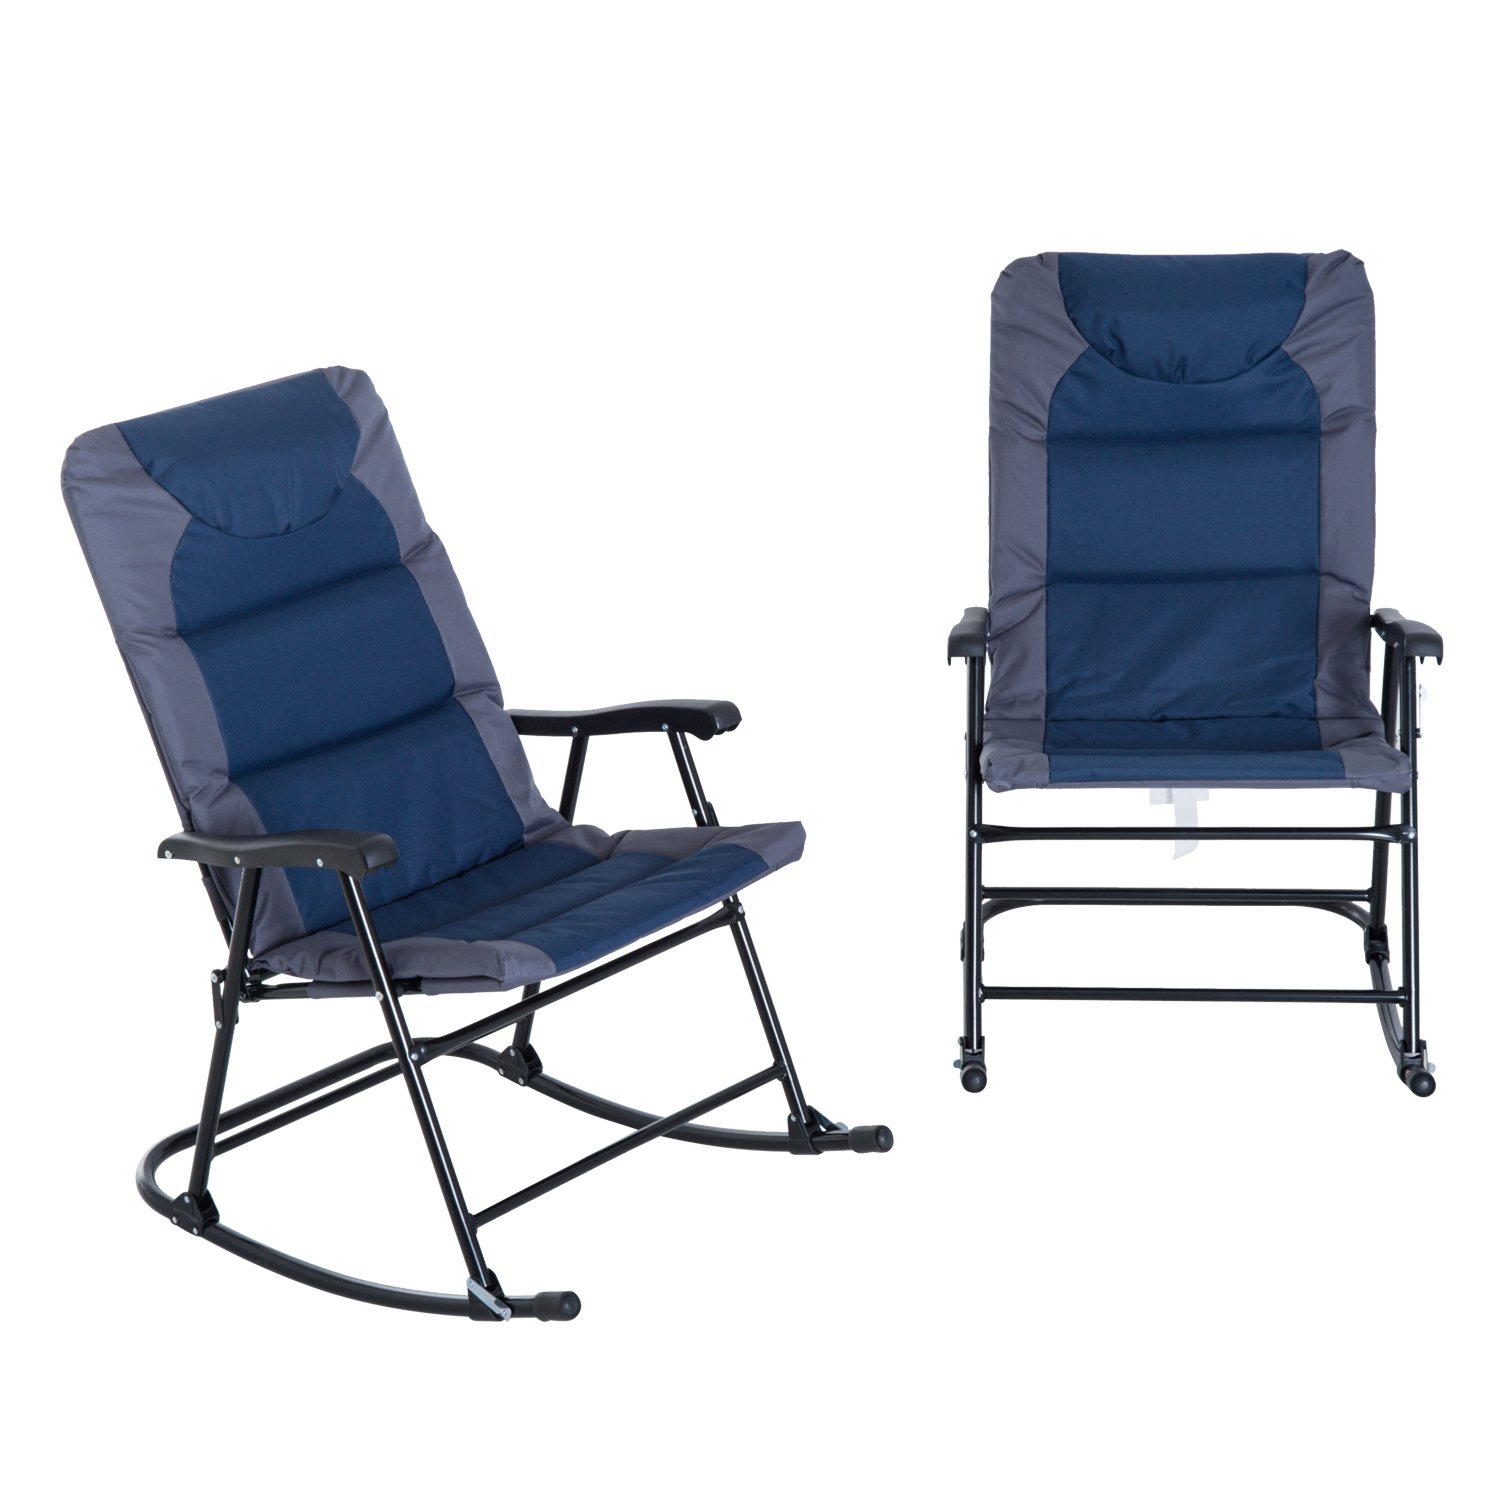 Outsunny Folding Padded Outdoor Camping Rocking Chair Set - Blue/Grey by Outsunny